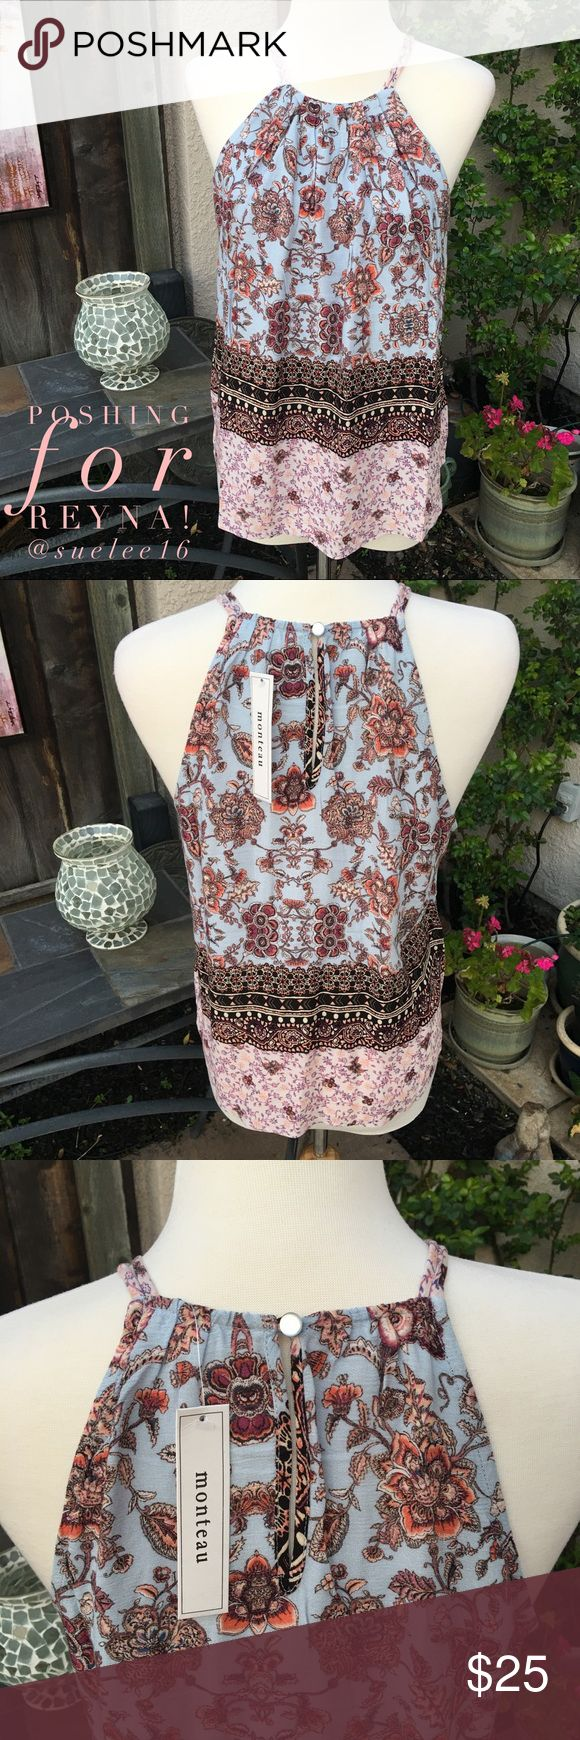 🌸NEW for Reyna! 🌸 Sweet Boho Top for Spring NWT! I'm am so excited to be selling this SWEET boho top! I'm obsessed with these colors! Blue sky, blush pink, warm oranges, browns and black - all pulled together with a gorgeous floral/ border print reminiscent of a romantic English garden!🌷Single keyhole button closure on the back. 100% flowy, soft rayon; a matching blue front lining in 100% polyester.🌸 50% of this sale I will donate straight to Reyna Lucero Castellanos' Go Fund Me page…